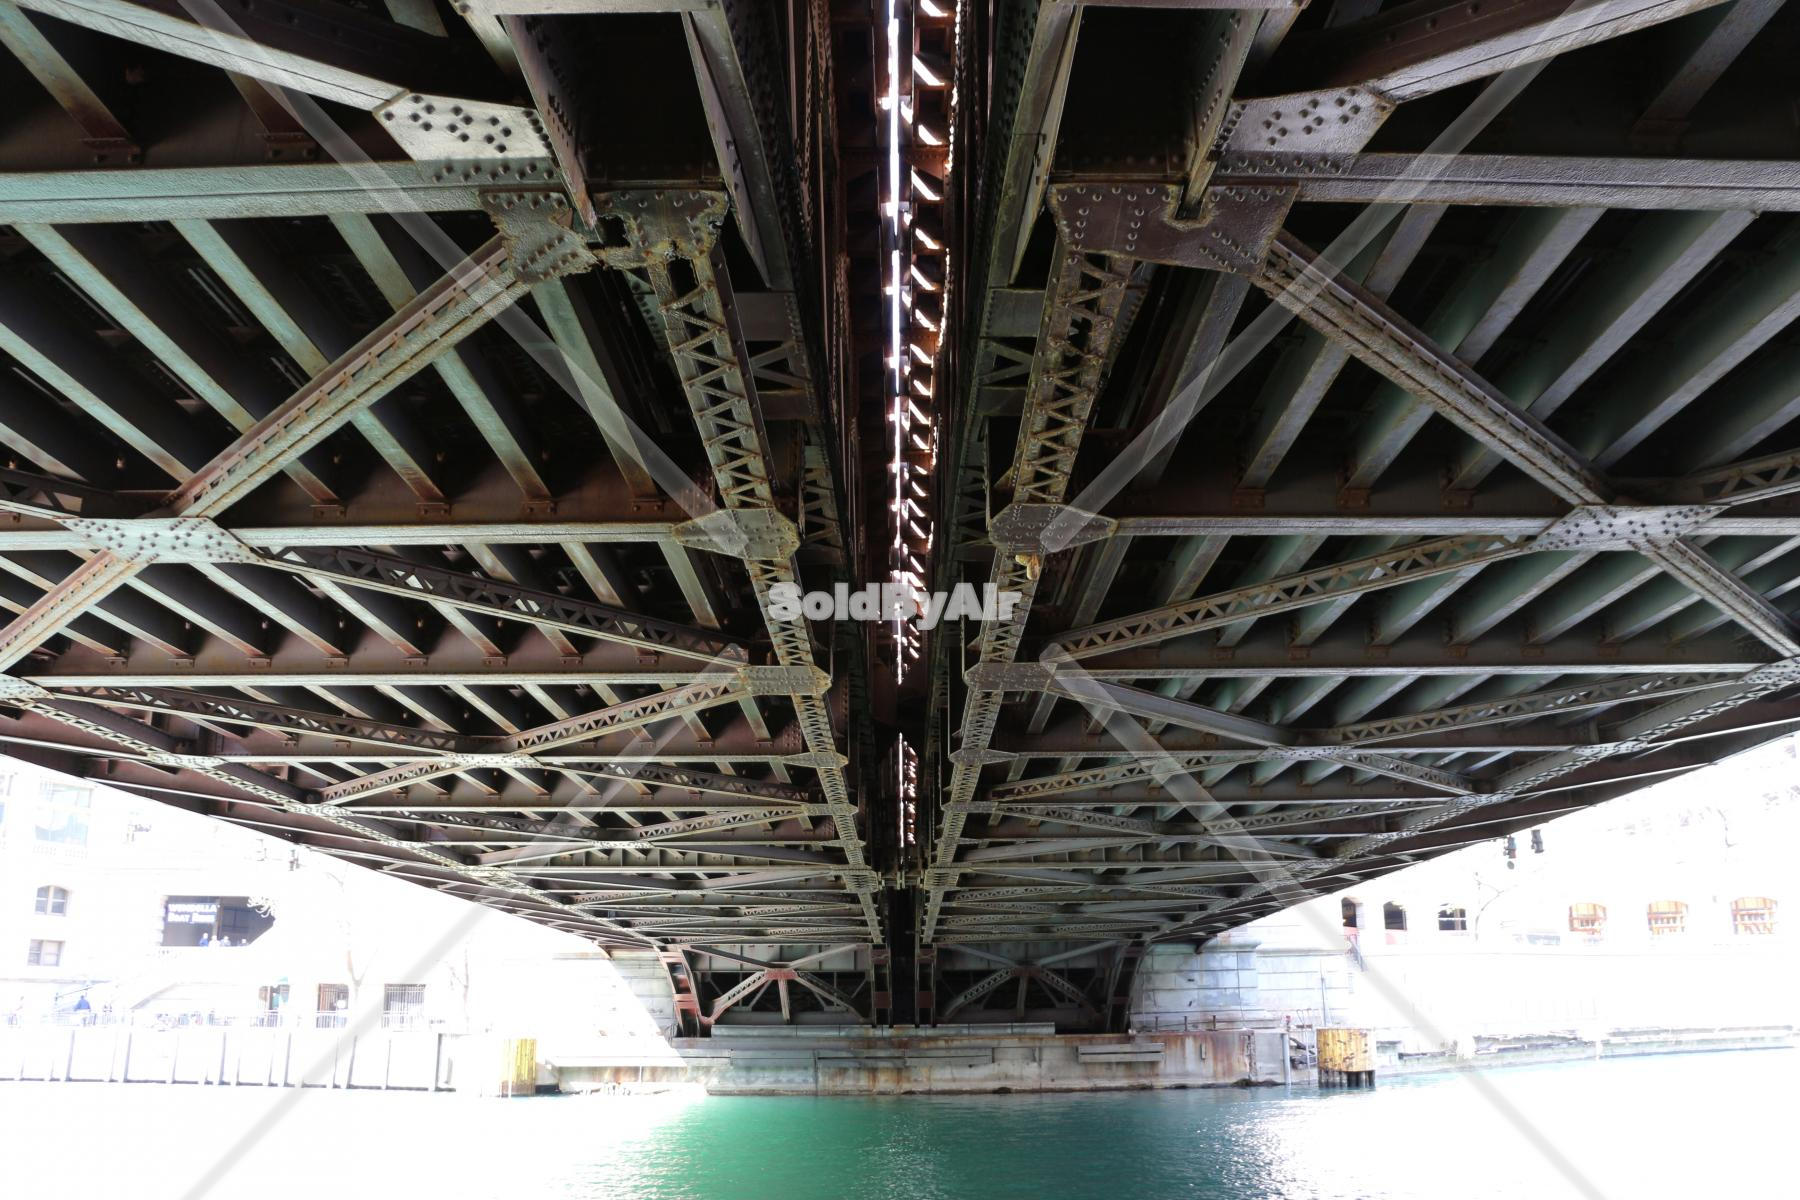 Drone Photo of Underside of bridge on Chicago River in Chicago Illinois